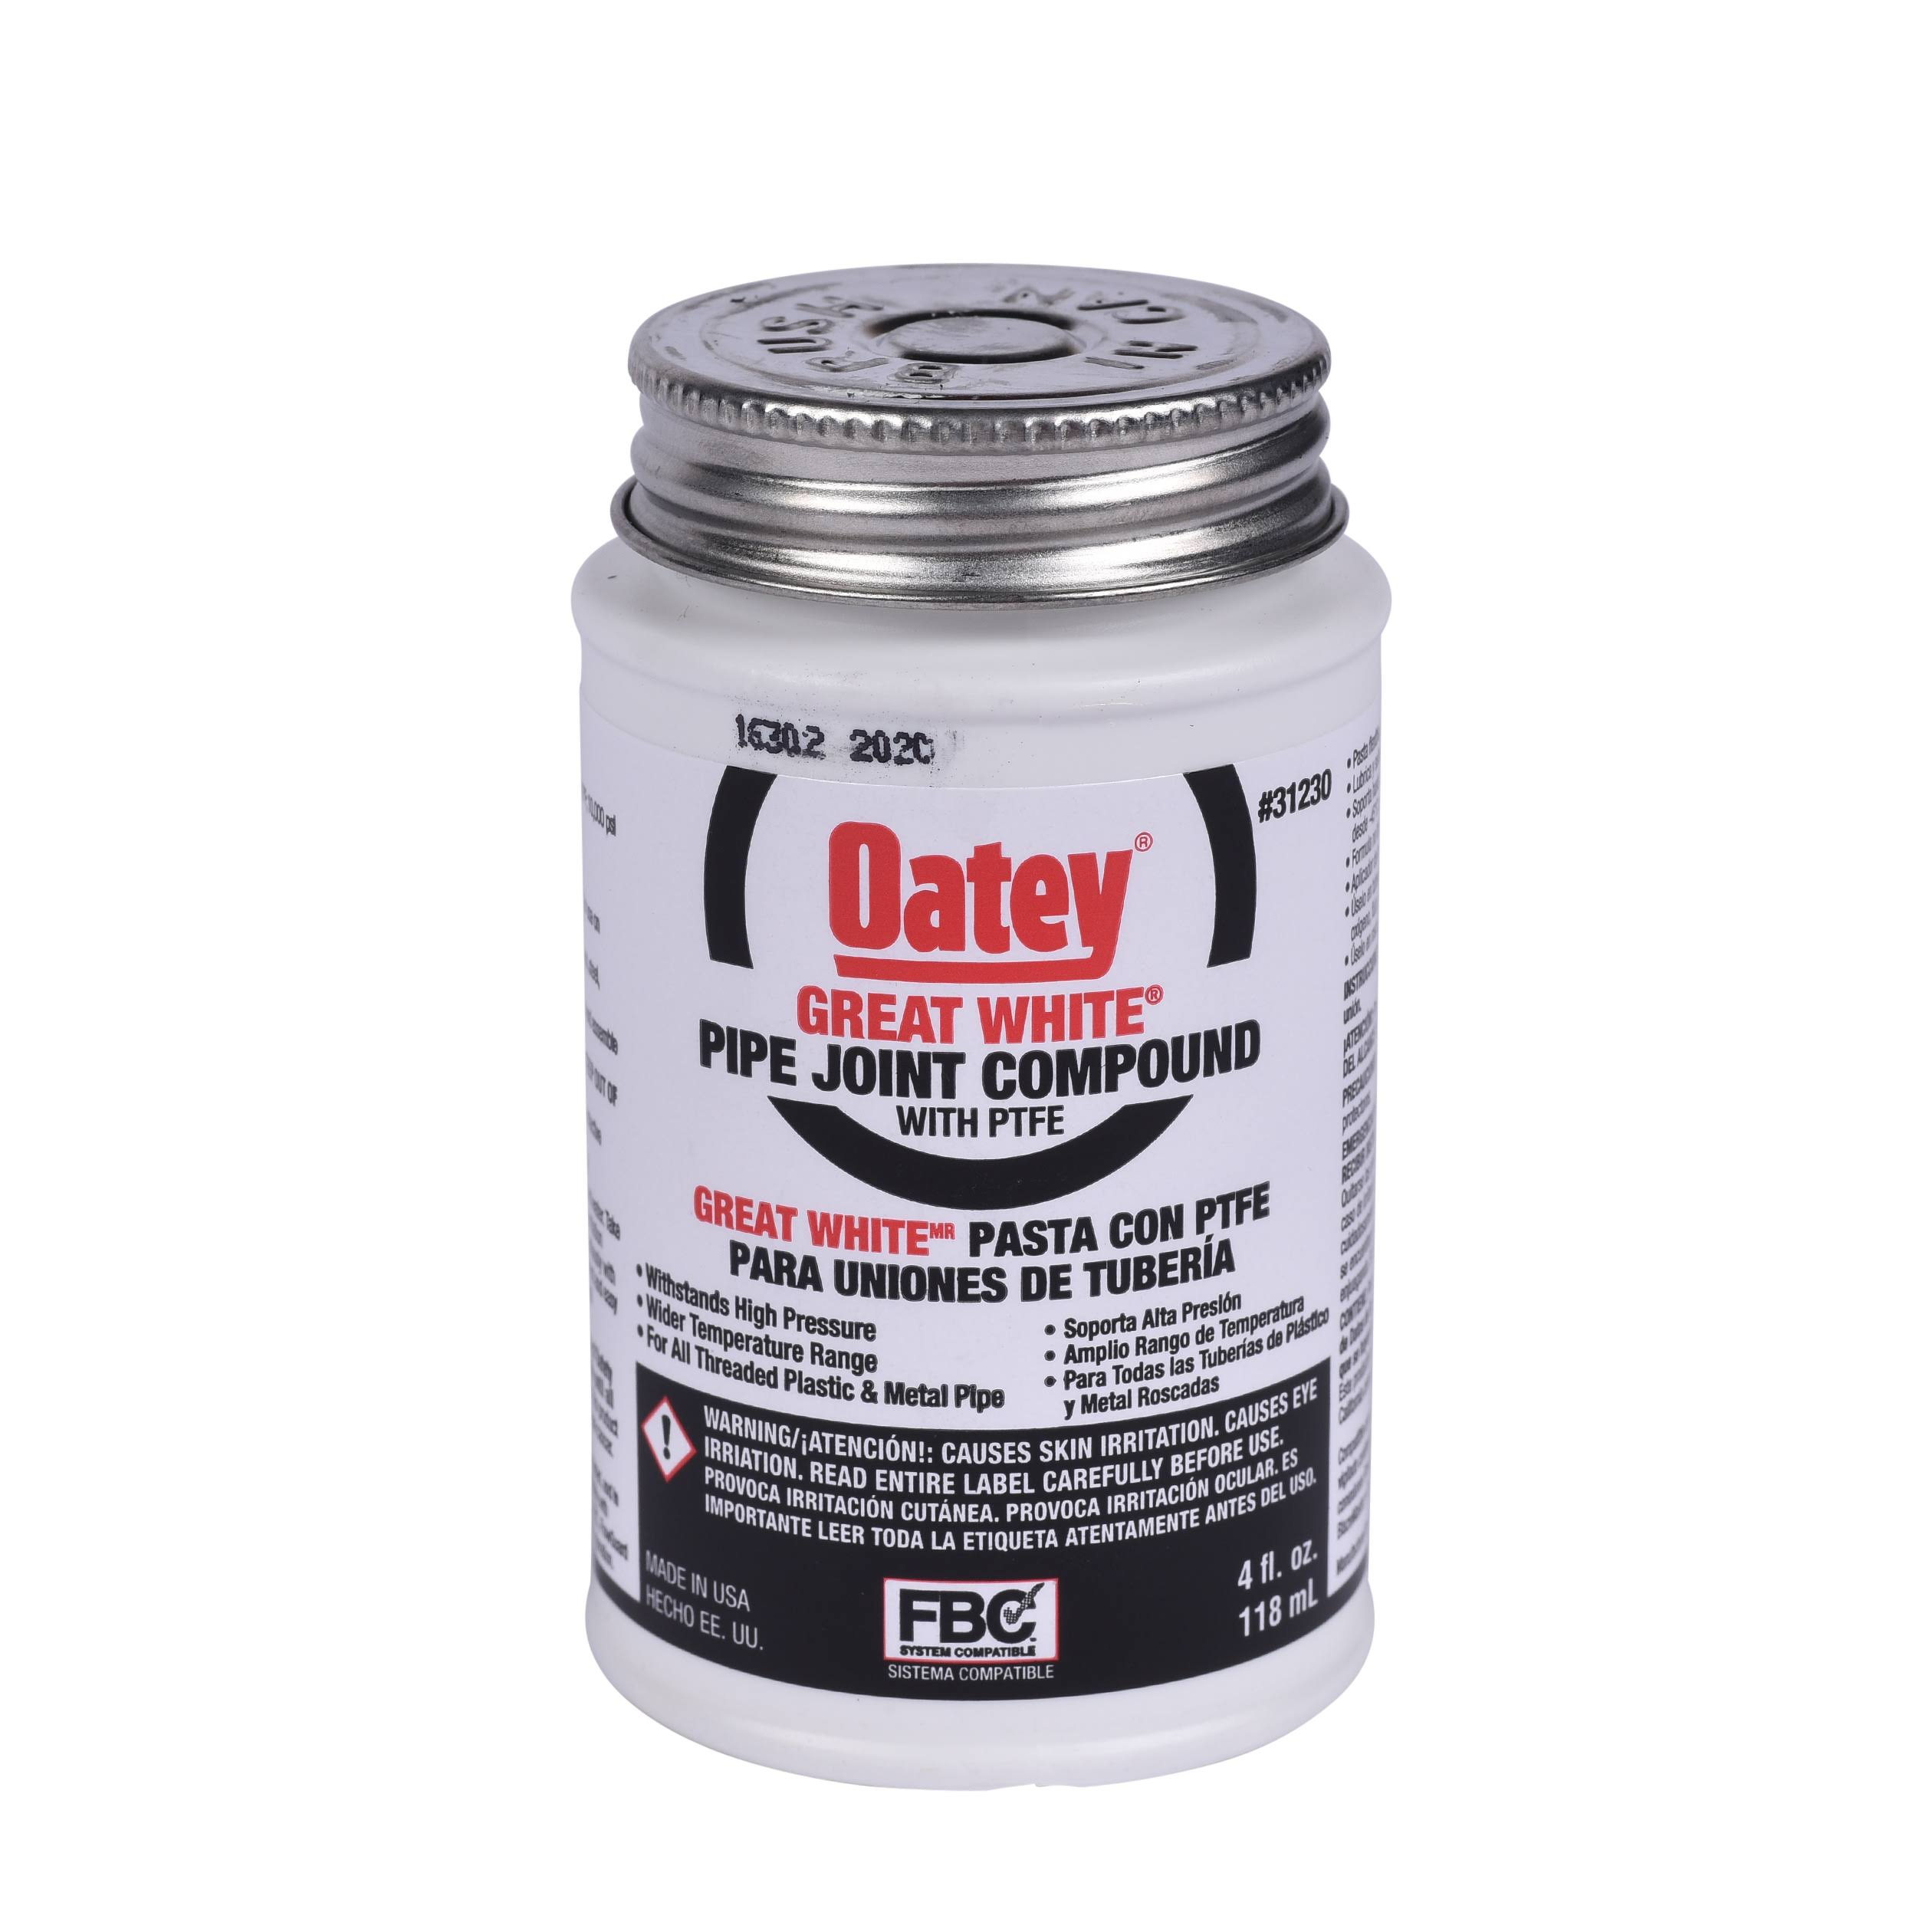 Oatey Great White Pipe Joint Compound - 8 Oz